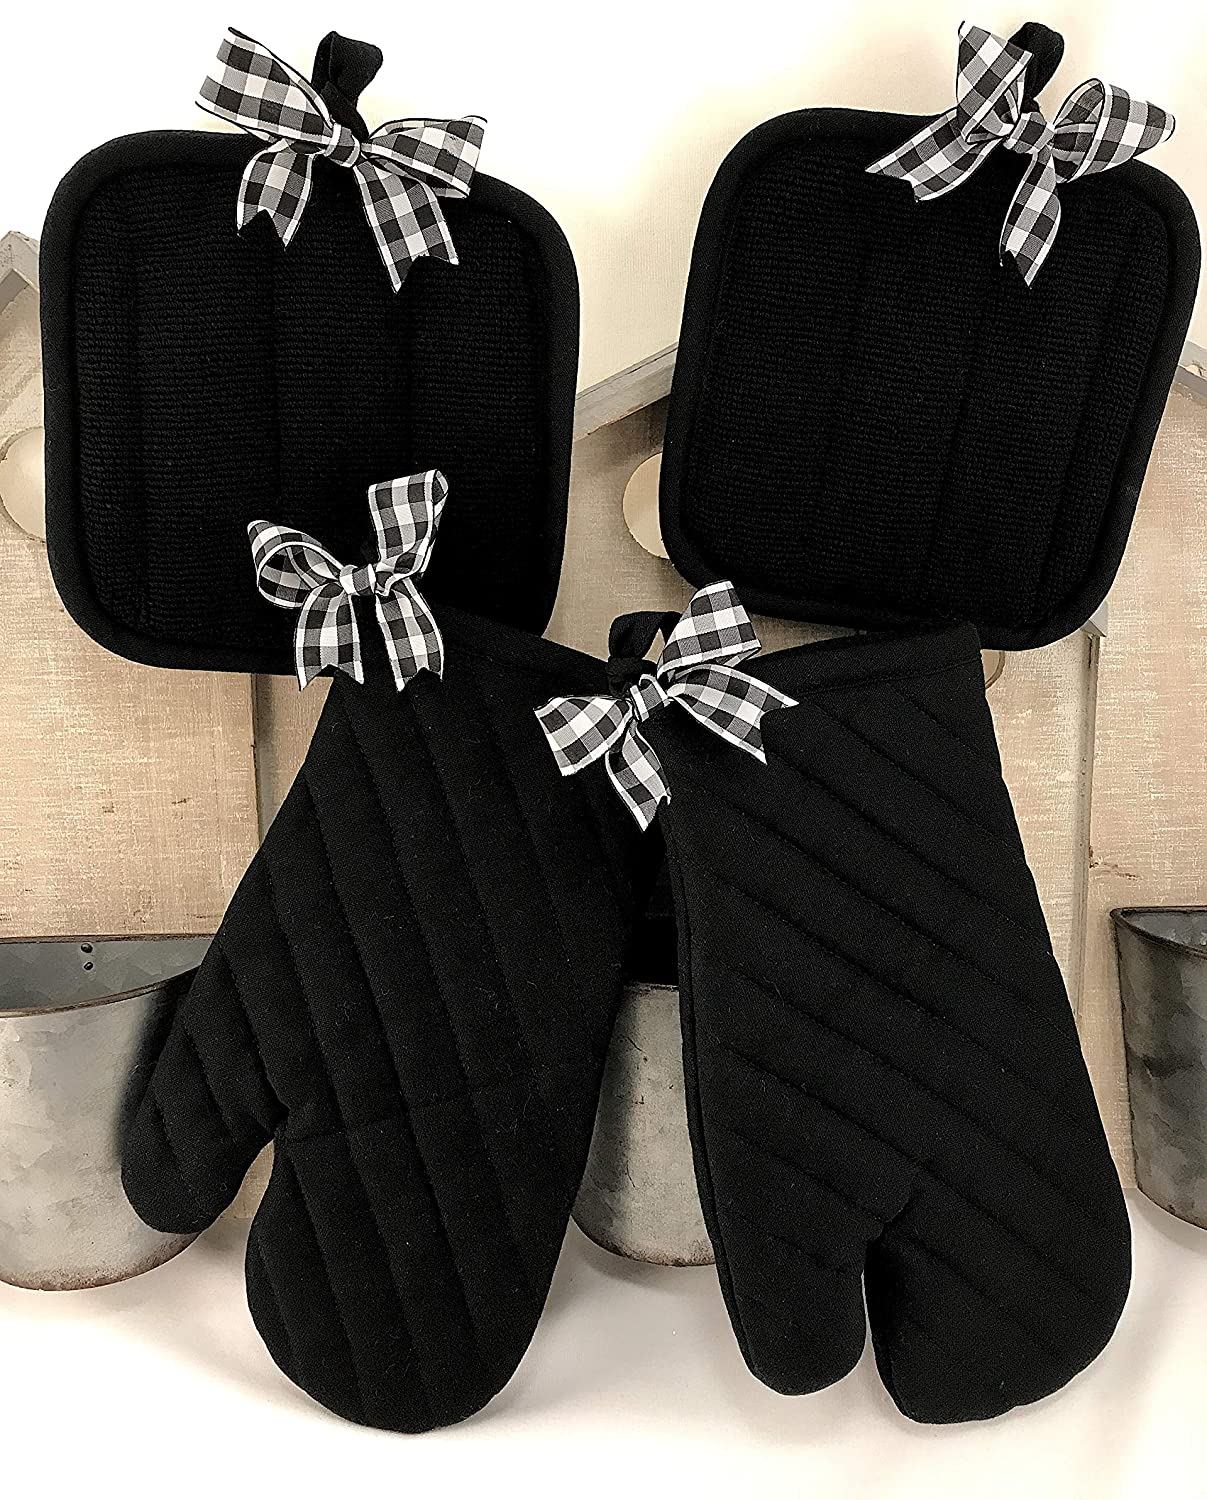 Buffalo Check Plaid Pot Holders 8 inch Black & White Oven Mitts 12.5 inch (Set of 4)